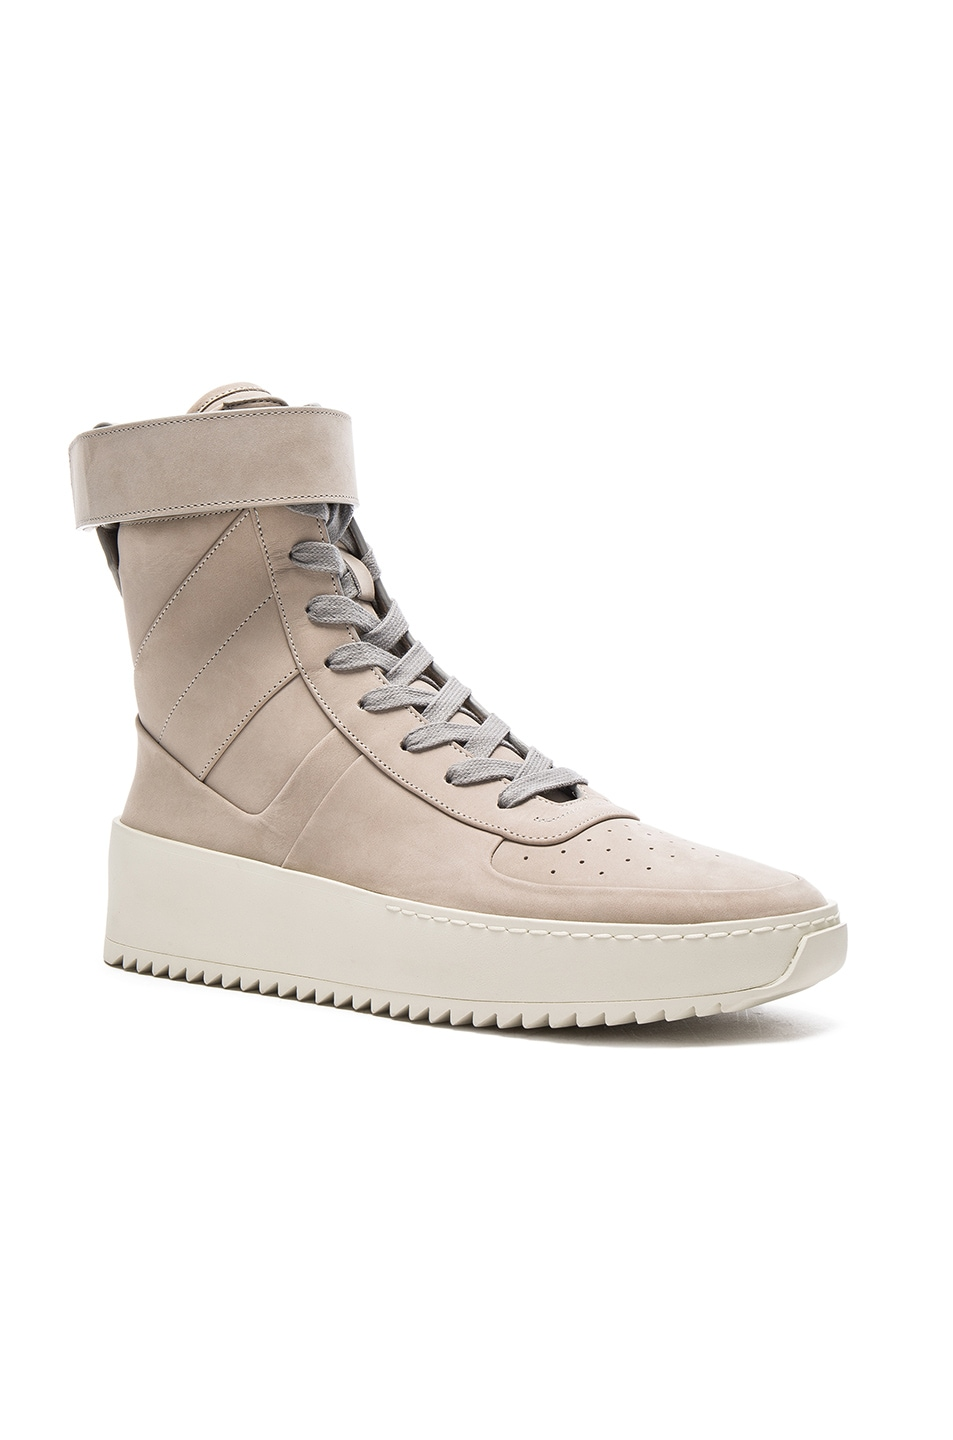 finest selection 12fd0 9e714 Image 1 of Fear of God Military Leather Sneakers in Grey